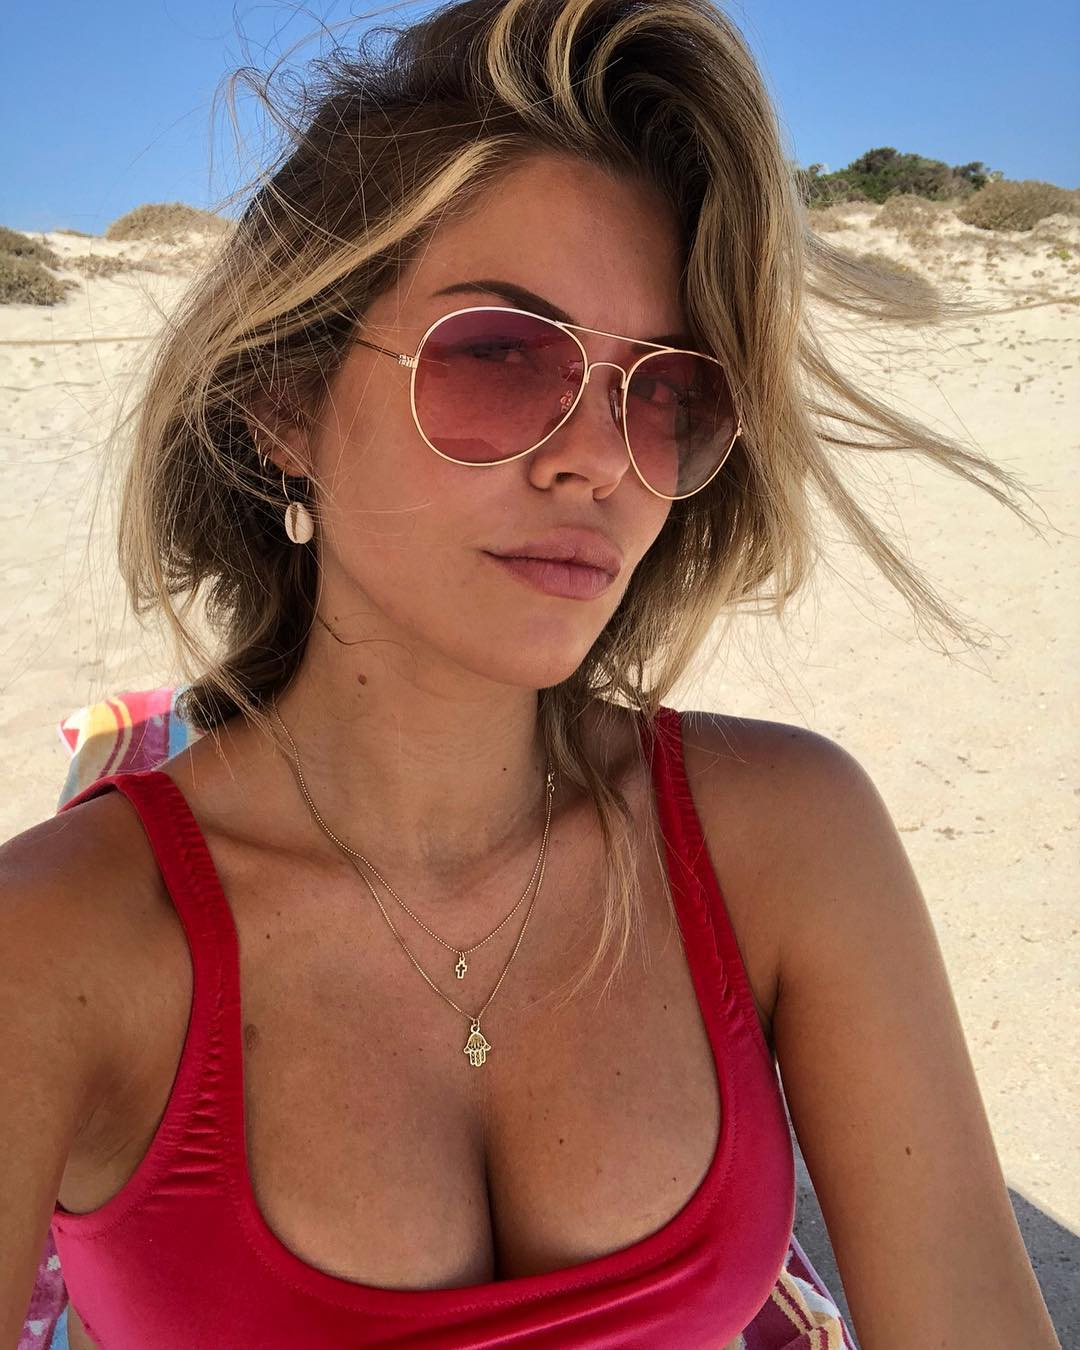 Costanza Caracciolo naked (72 photos), fotos Fappening, iCloud, braless 2020